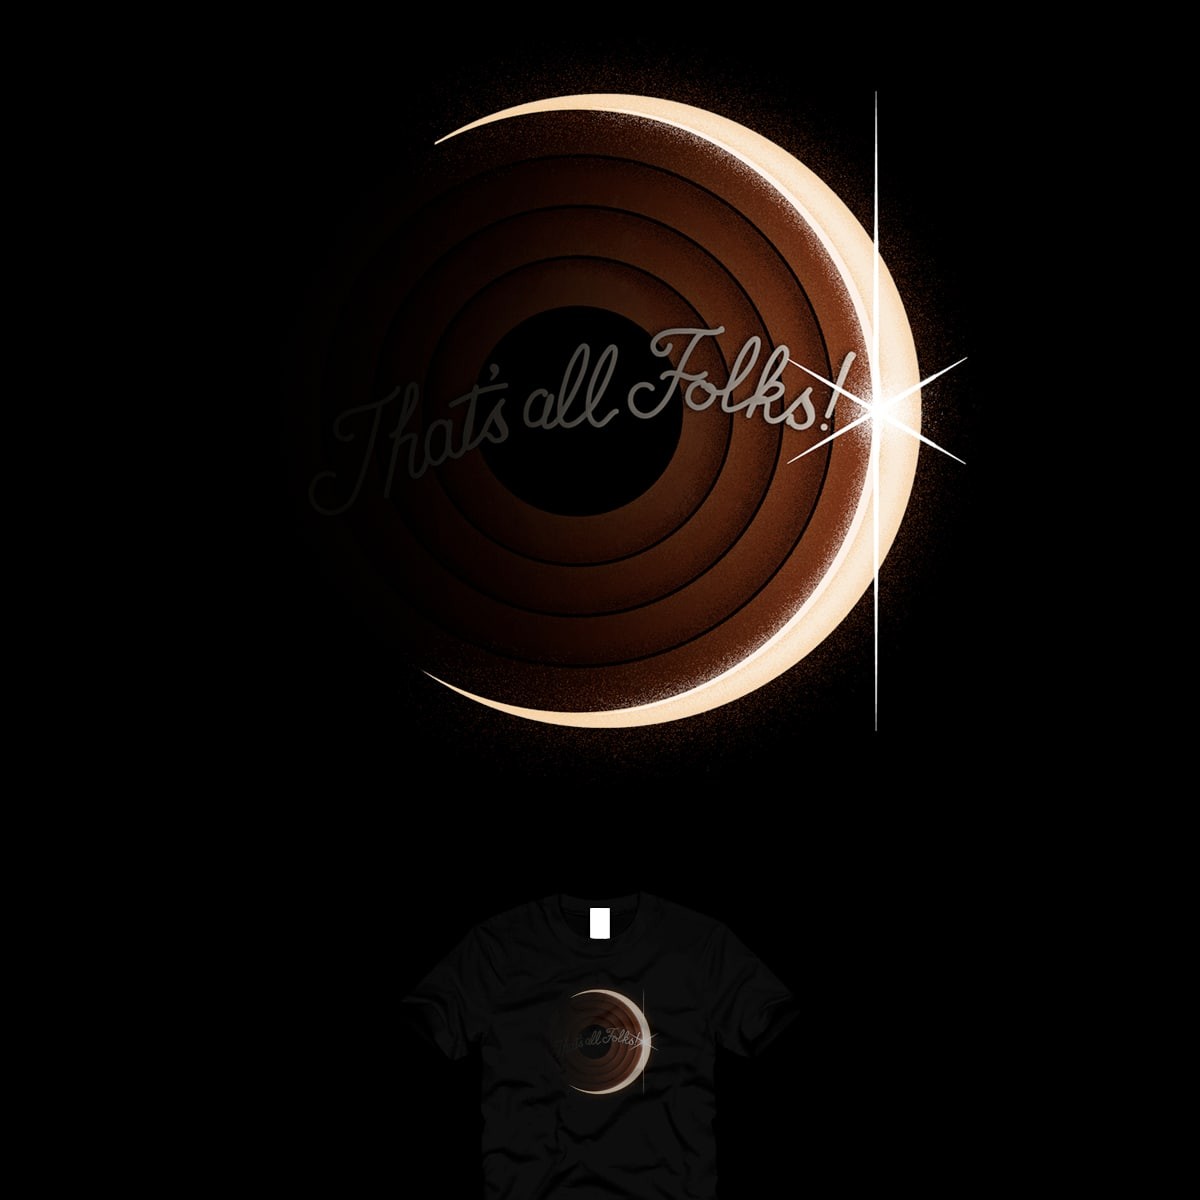 Looney Eclipse by GyleDesigns on Threadless